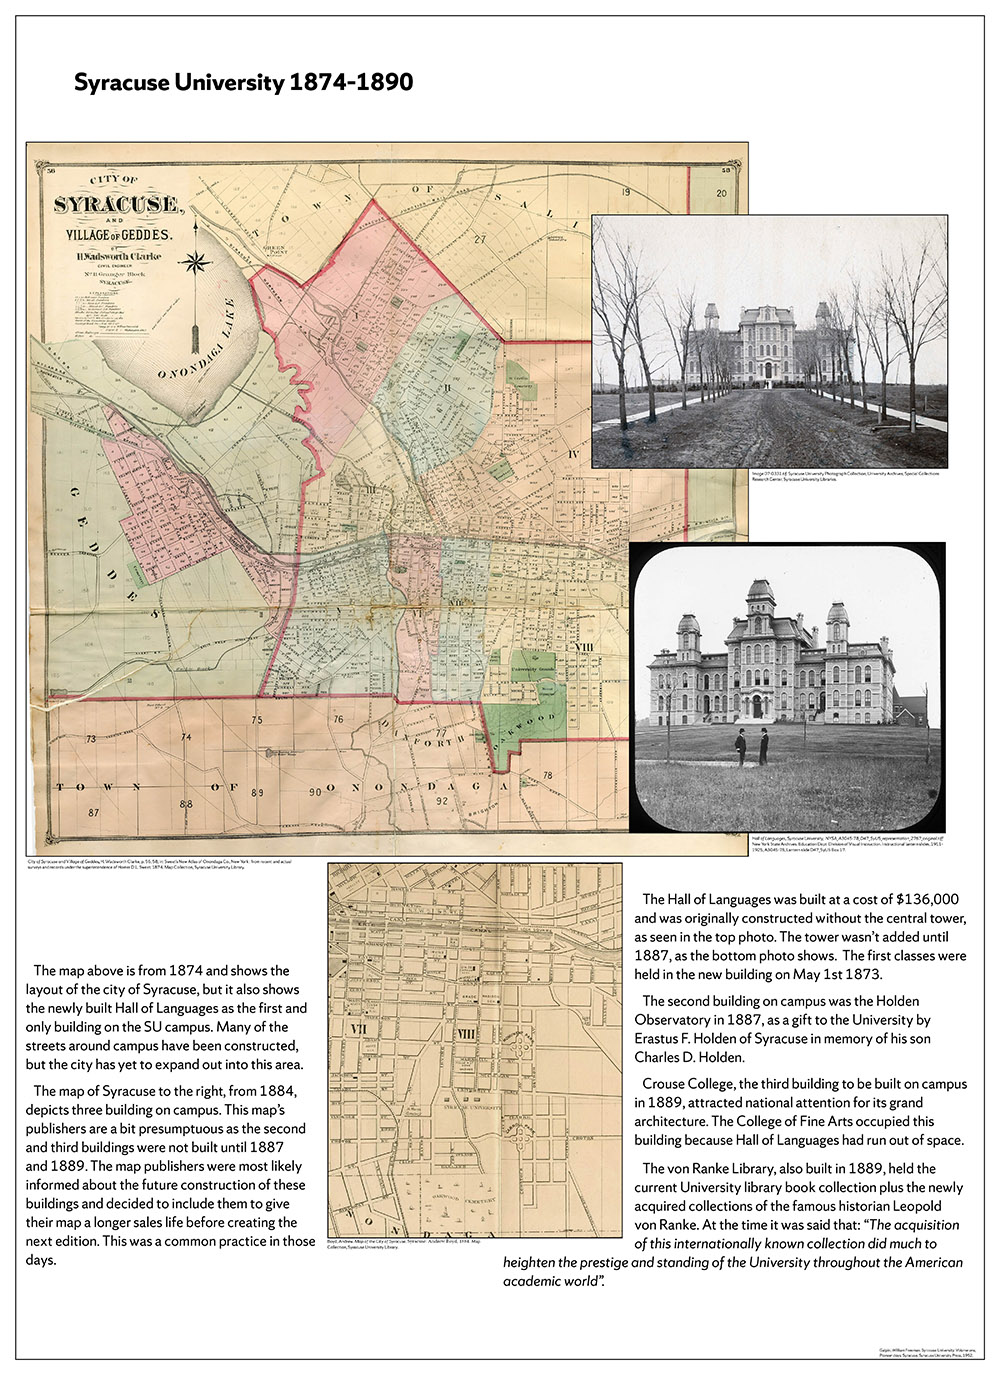 Syracuse University 150 years in maps – 1874-1890 poster